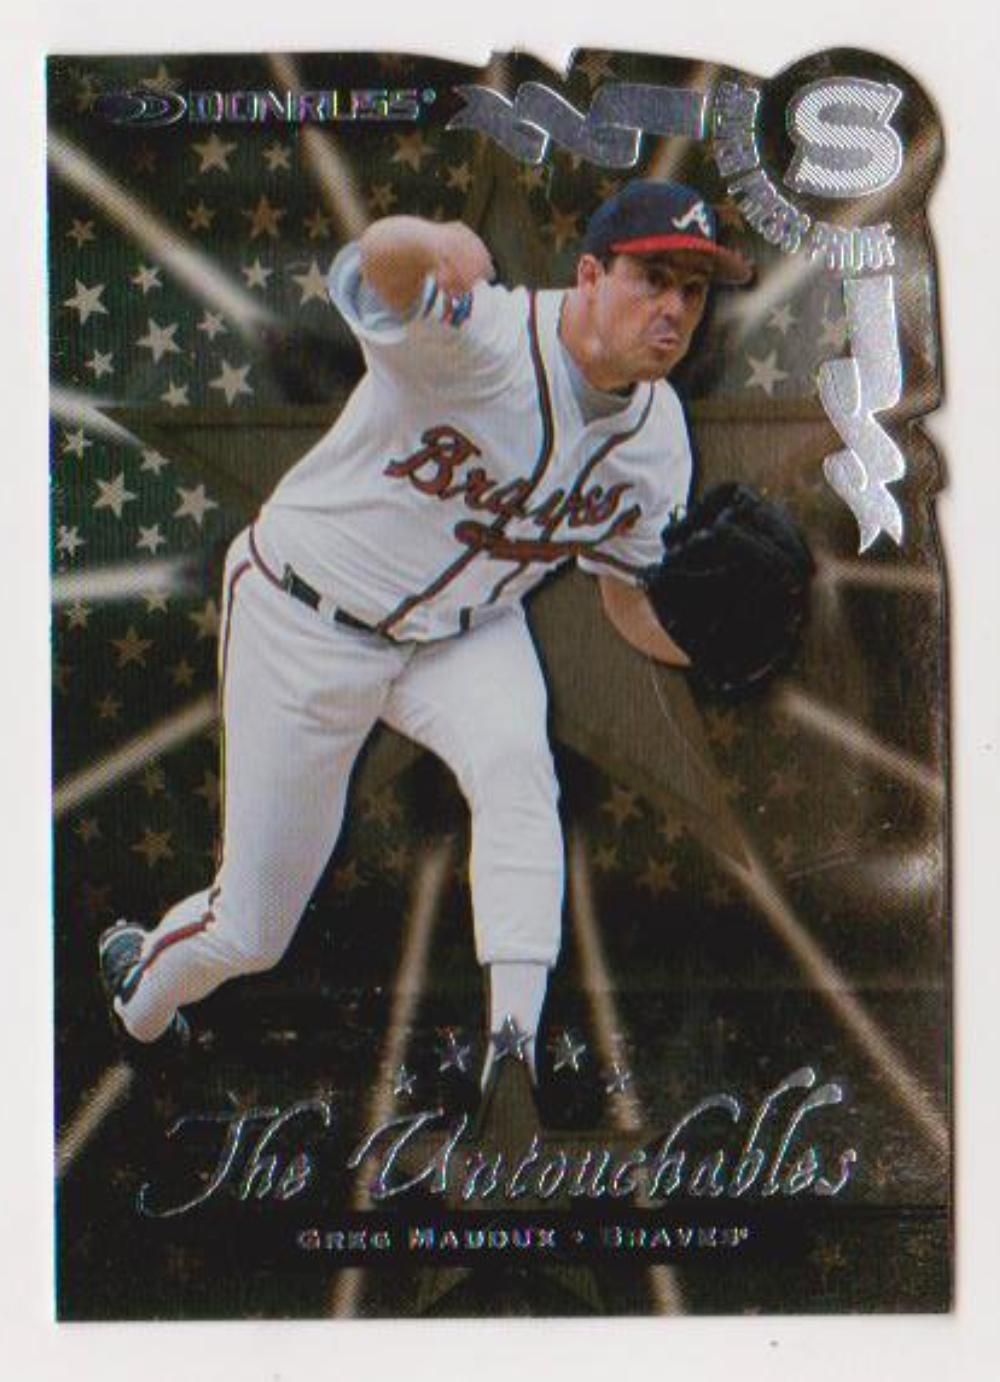 1998 Donruss Silver Press Proof Greg Maddux #380 Insert Card (1 of 1500)